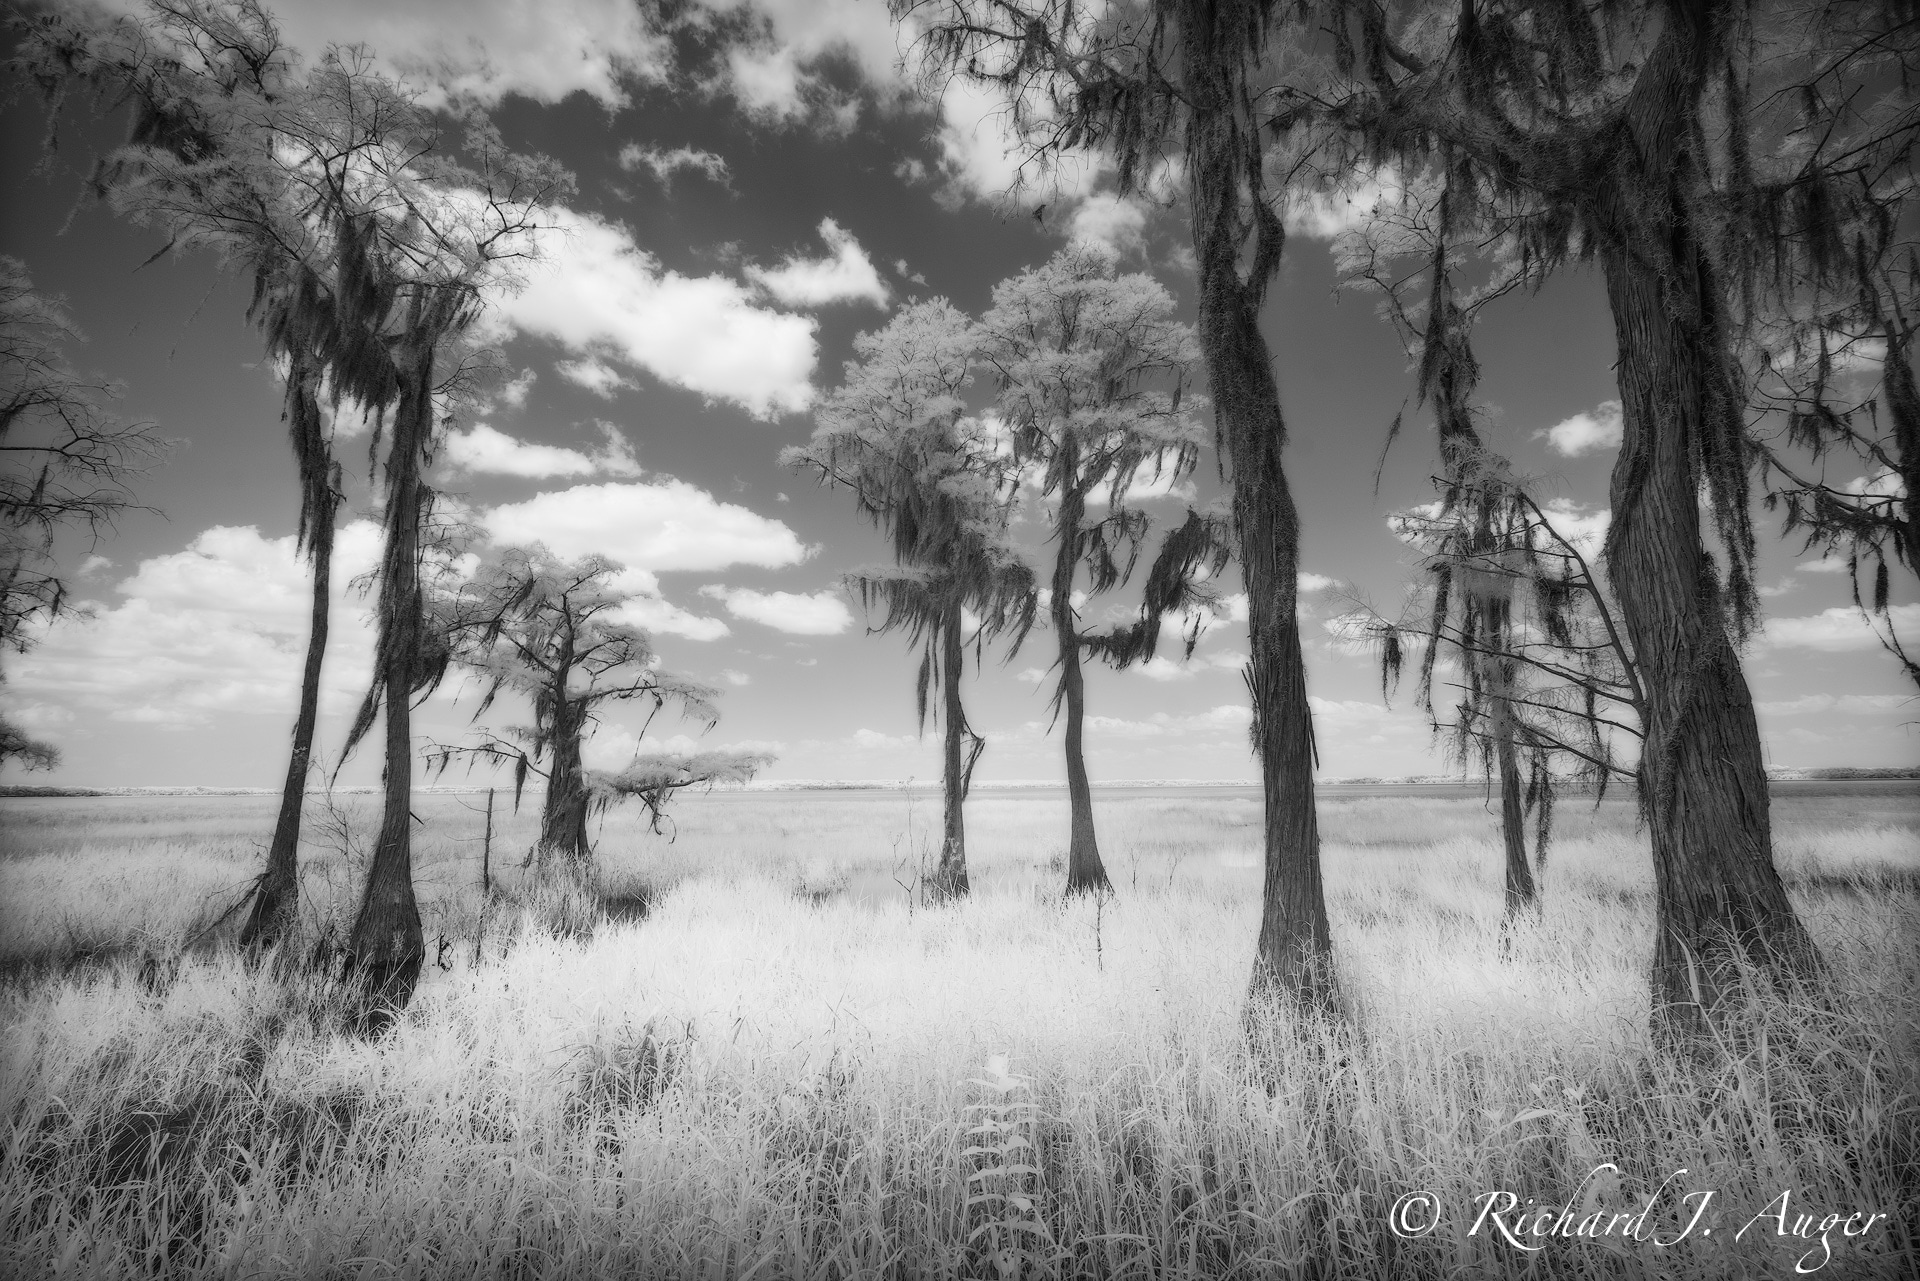 Lake louisa state park florida black and white monochrom photograph landscape